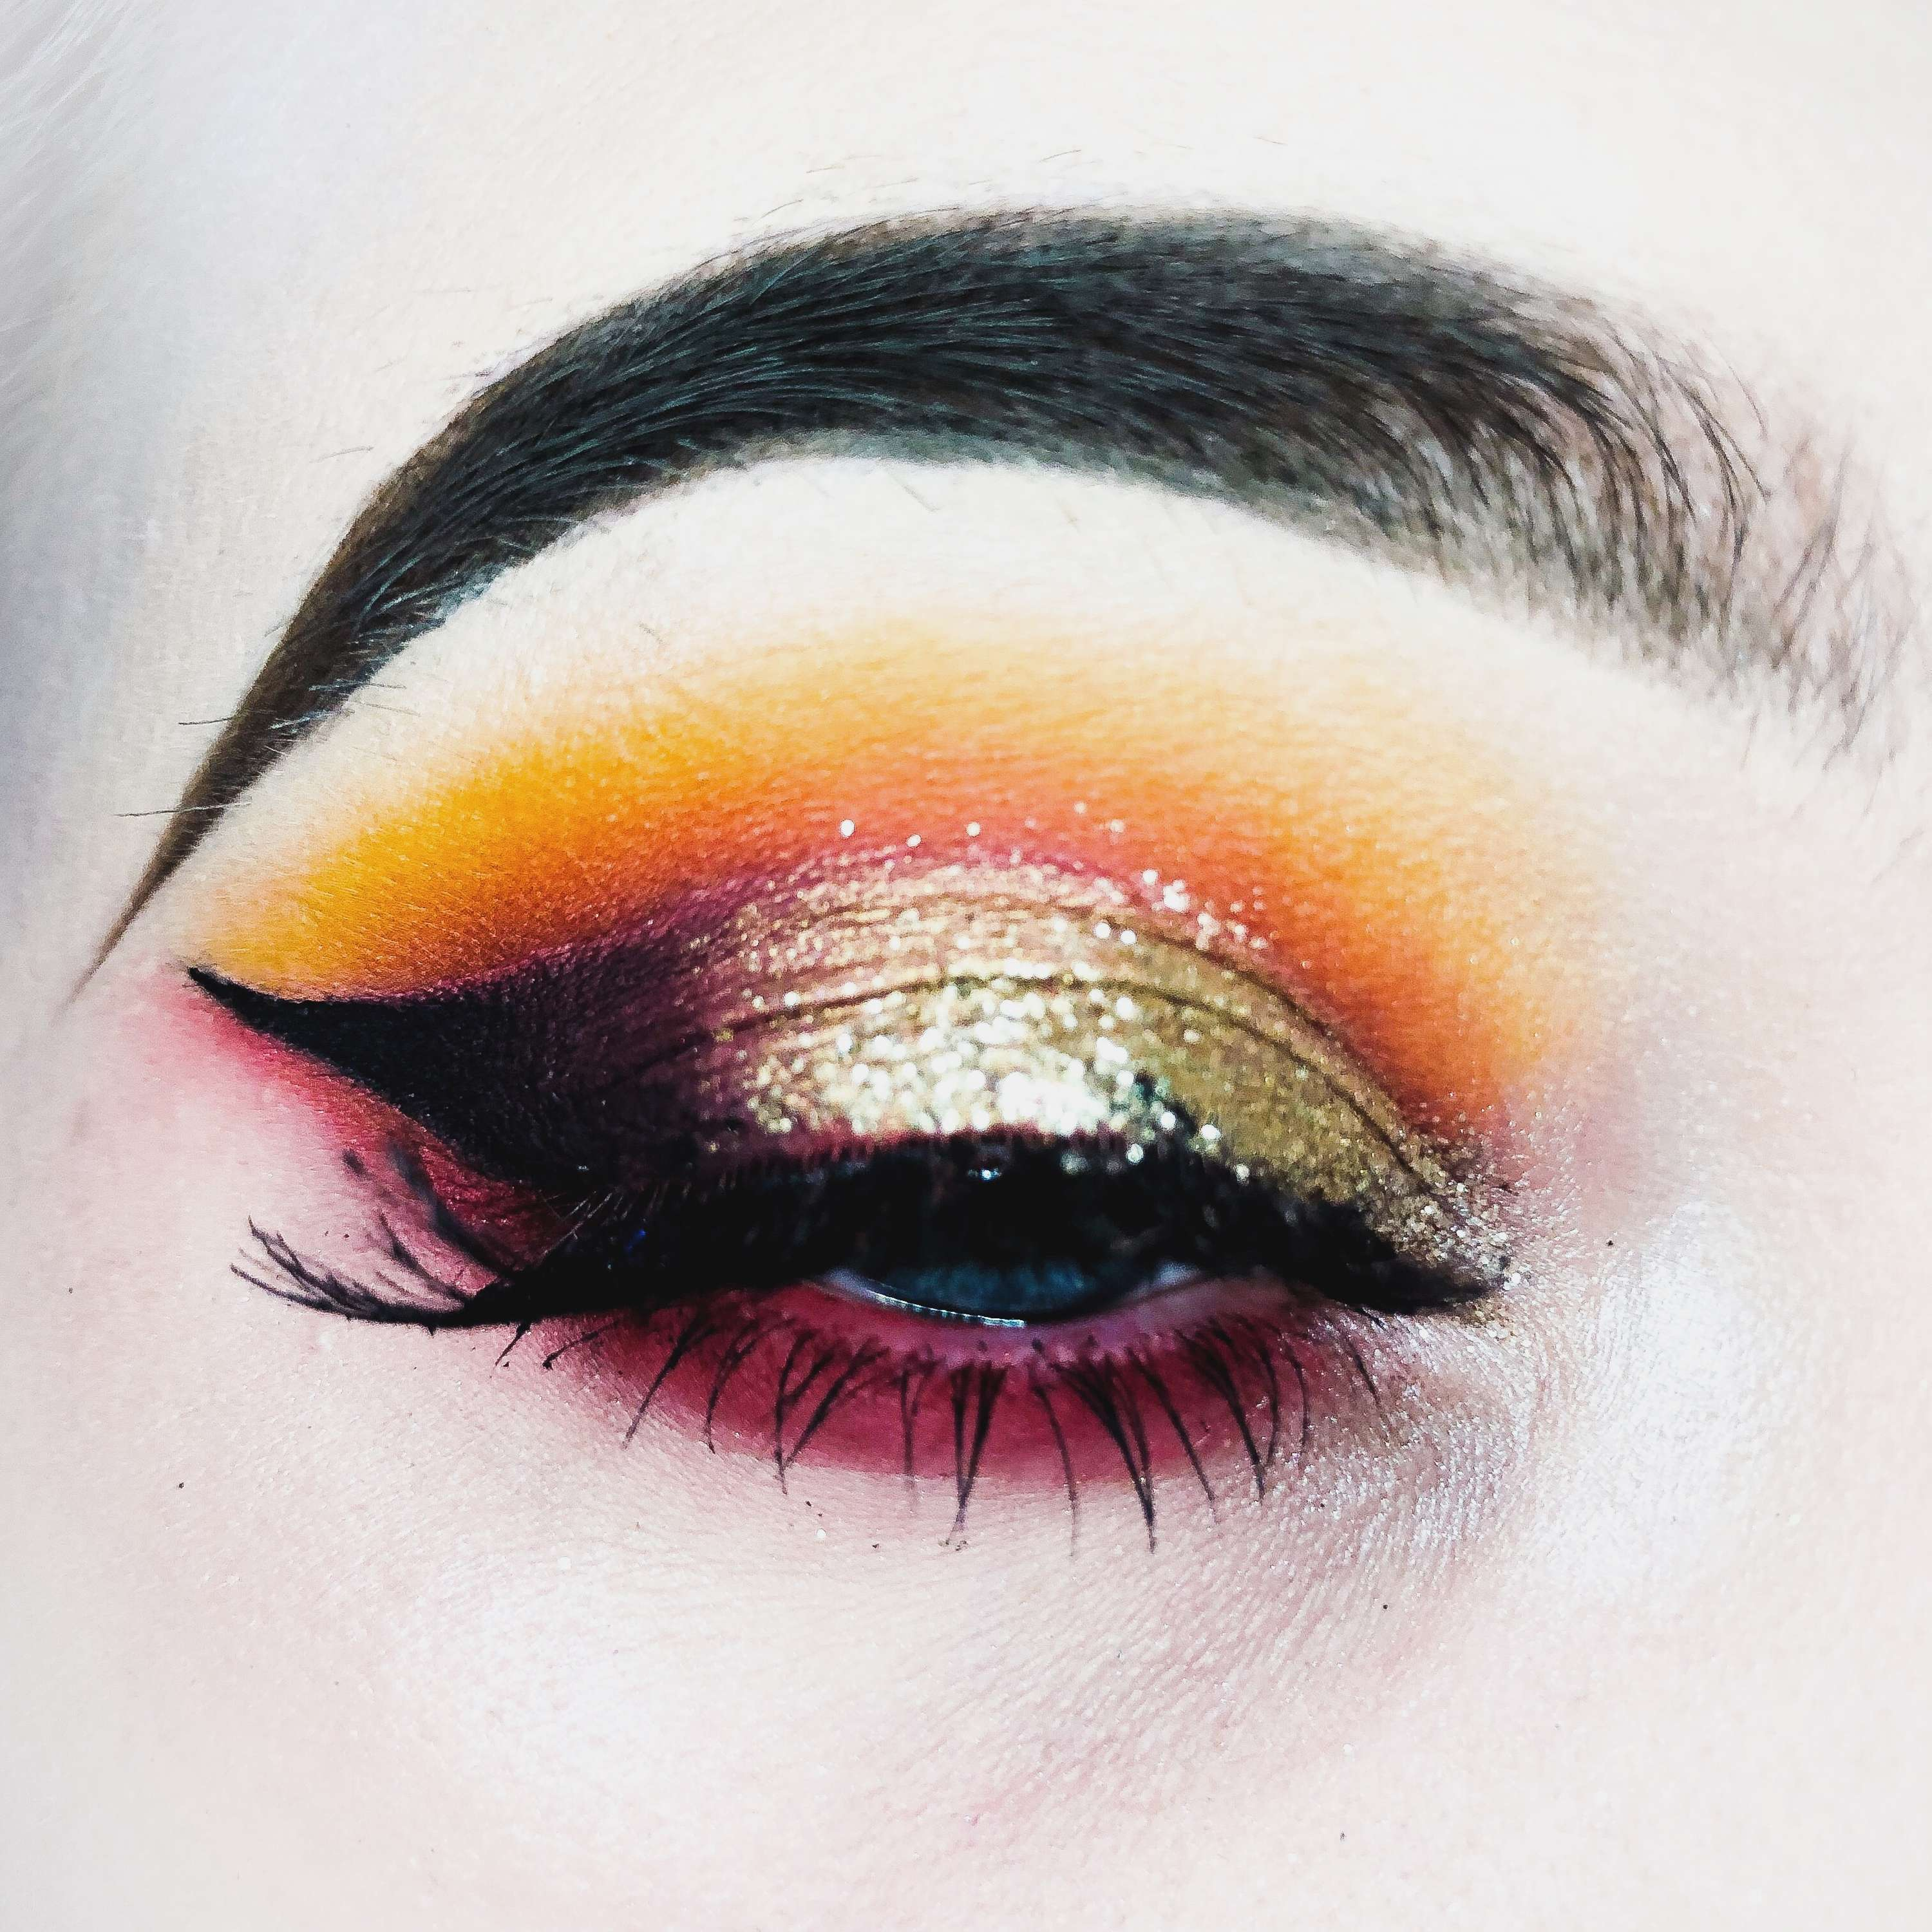 Makeup creations I do in my free time for portfolio building